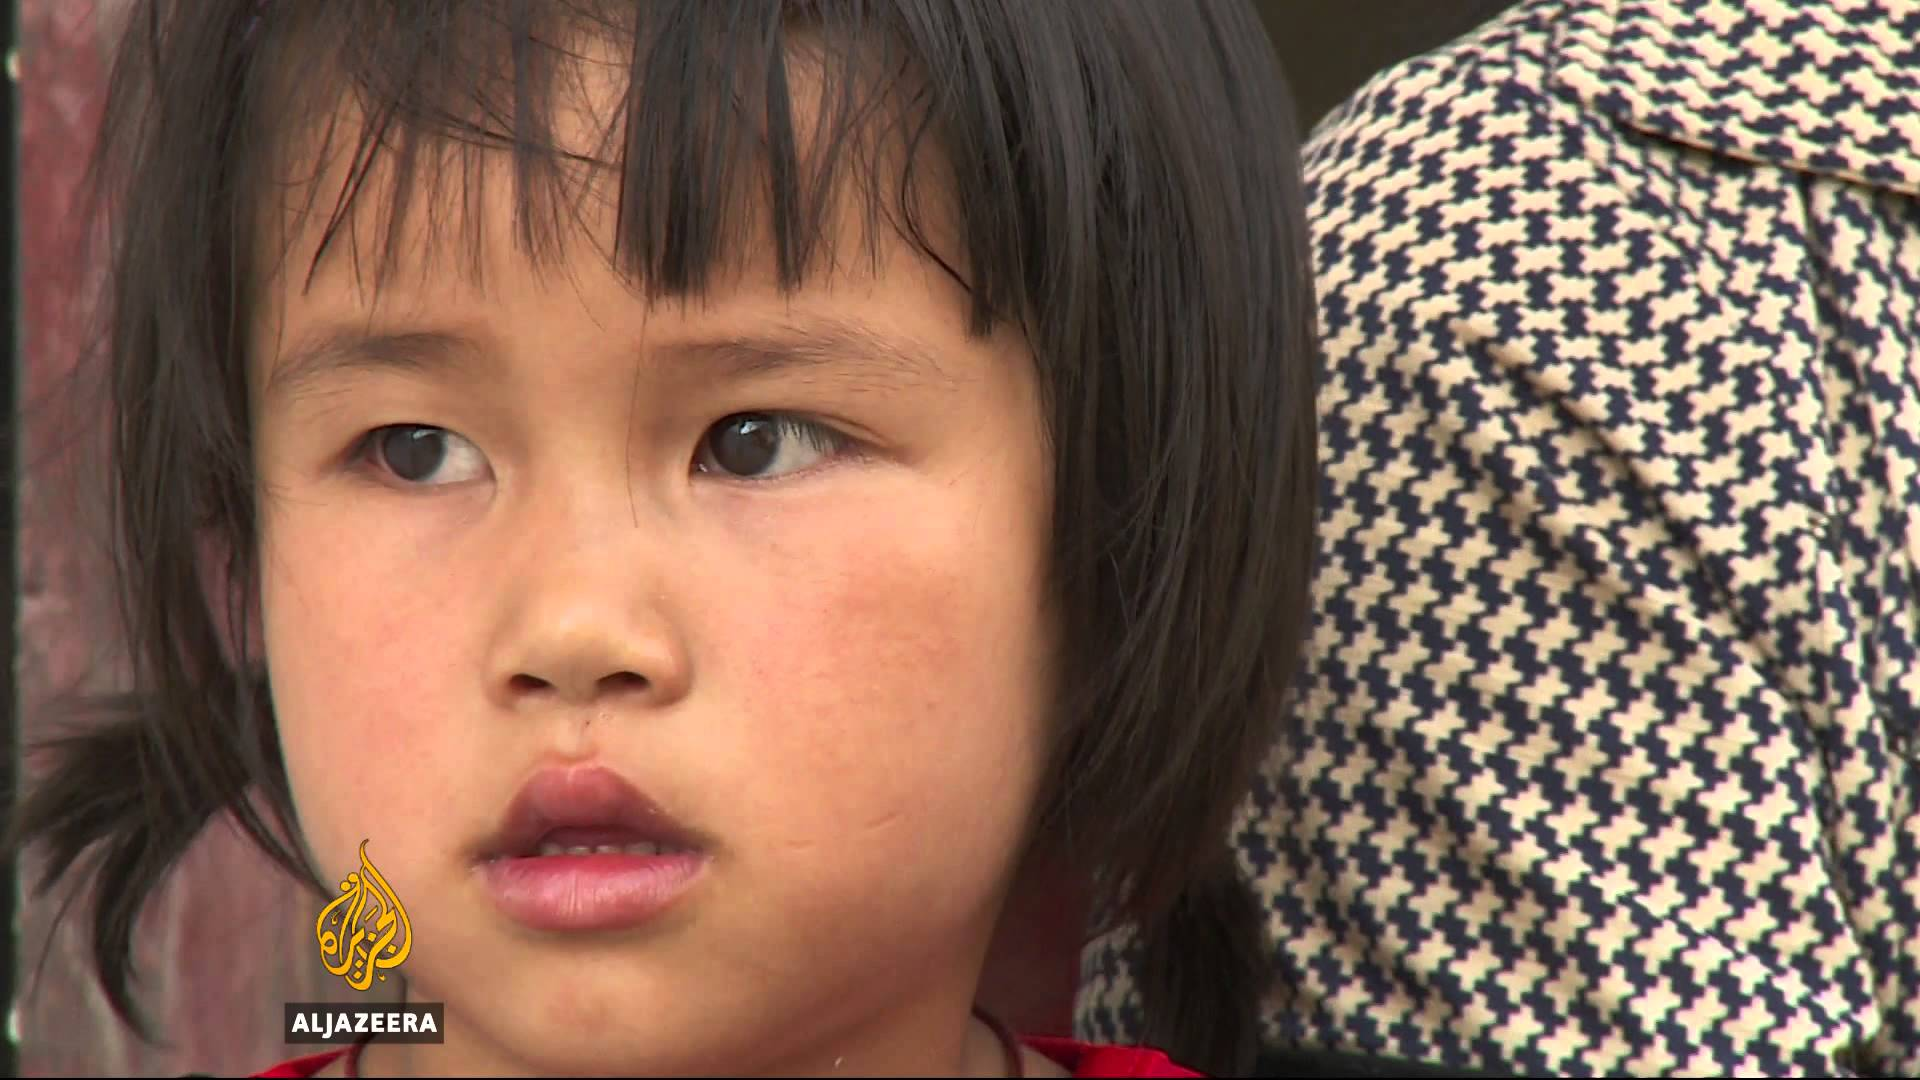 Suicides Of Four Children In China Raise Welfare Concerns